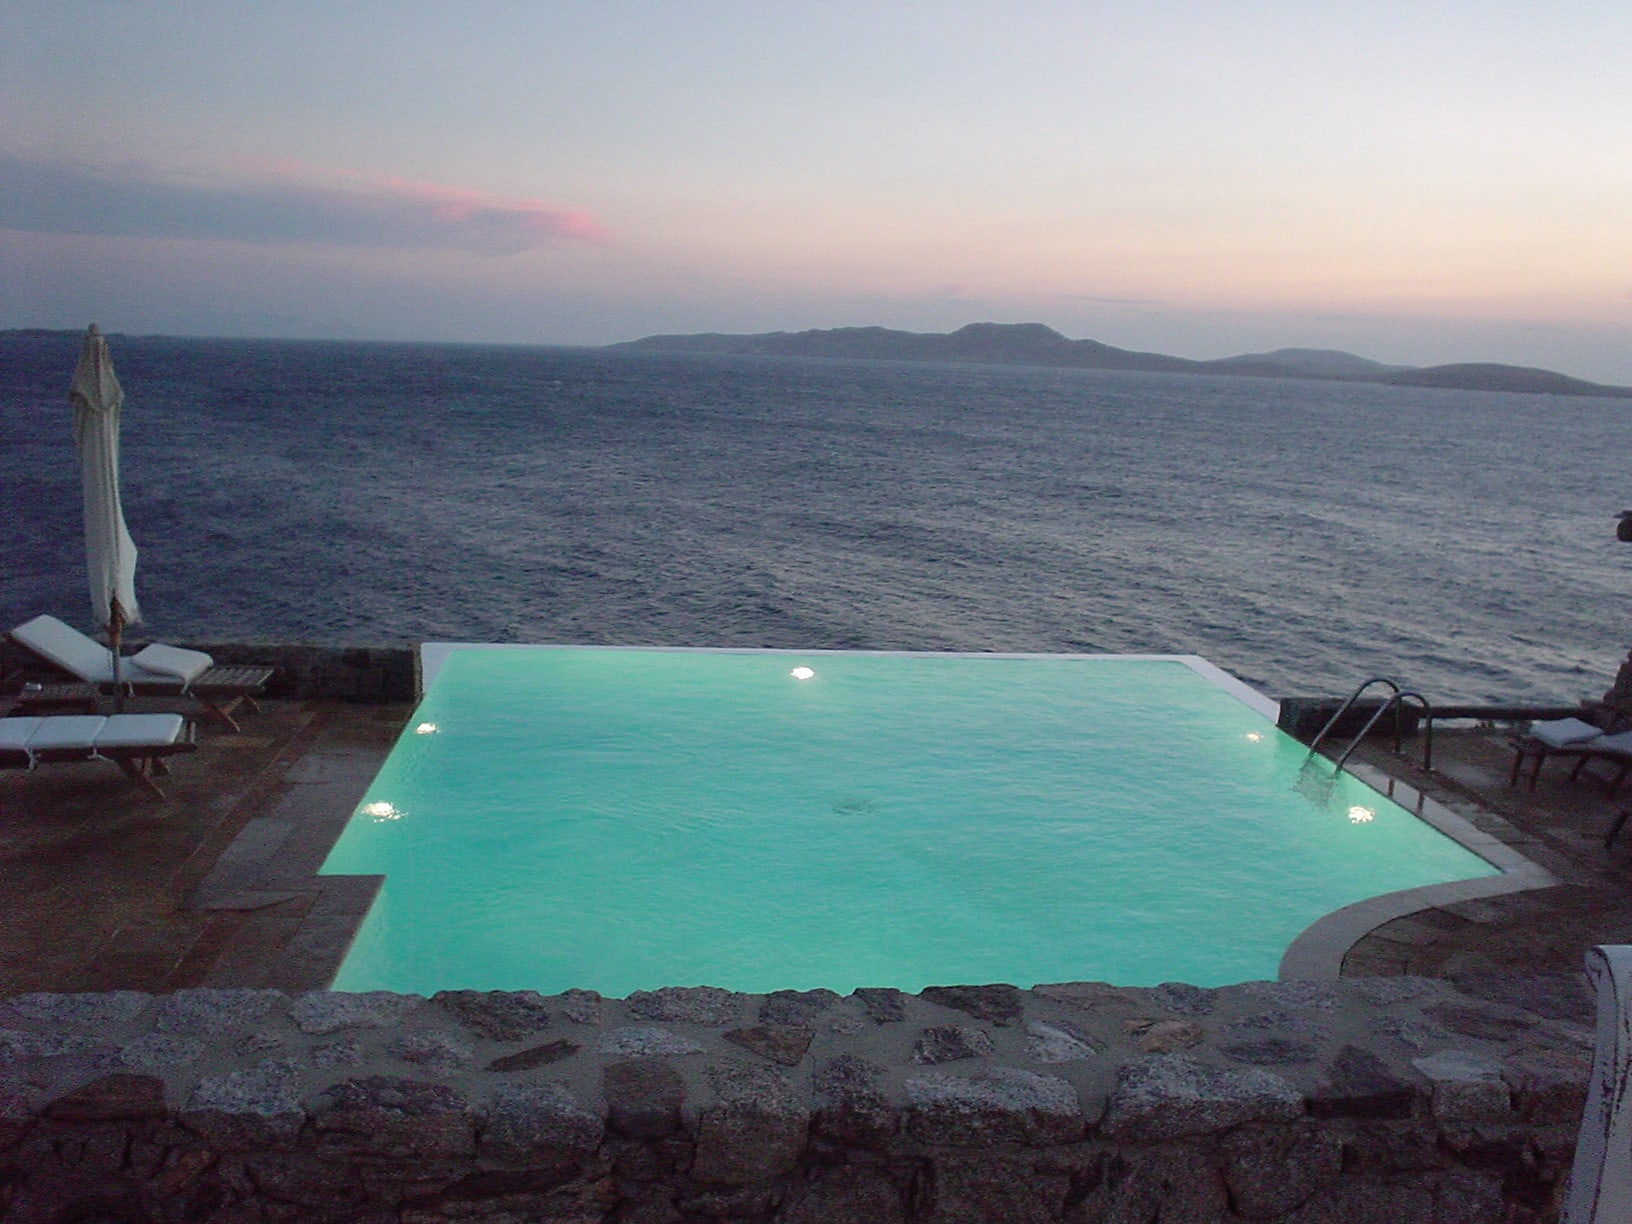 infinity pool sunset in greece samantha brown 39 s places to love. Black Bedroom Furniture Sets. Home Design Ideas